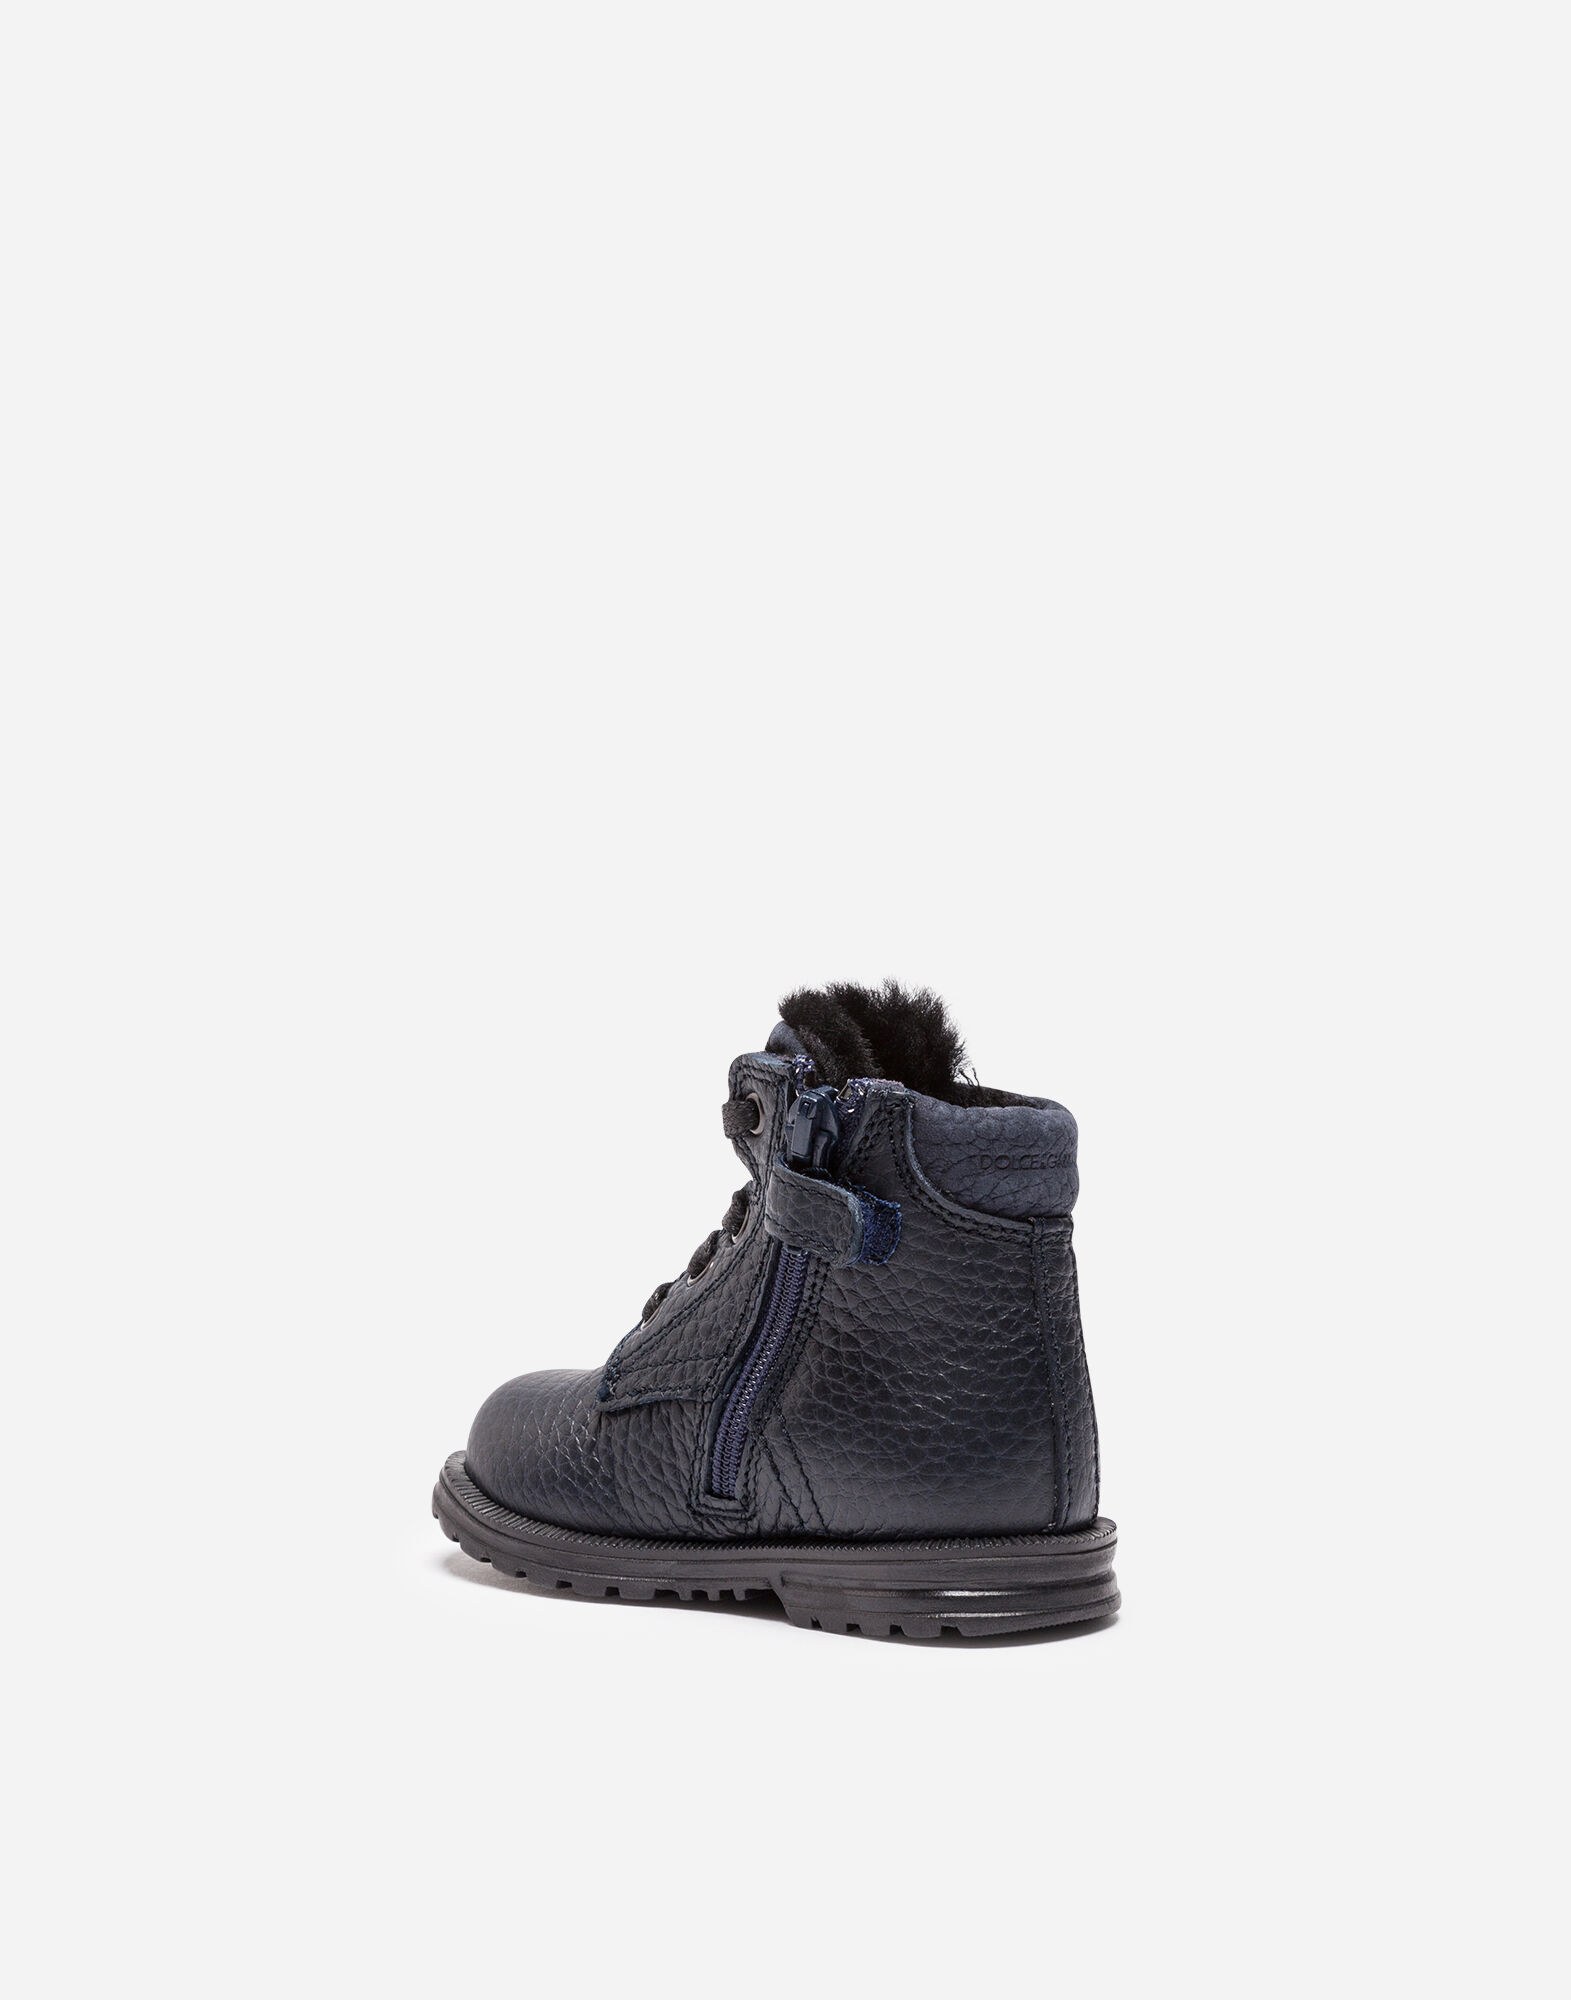 KID'S FIRST STEPS LEATHER ANKLE BOOTS